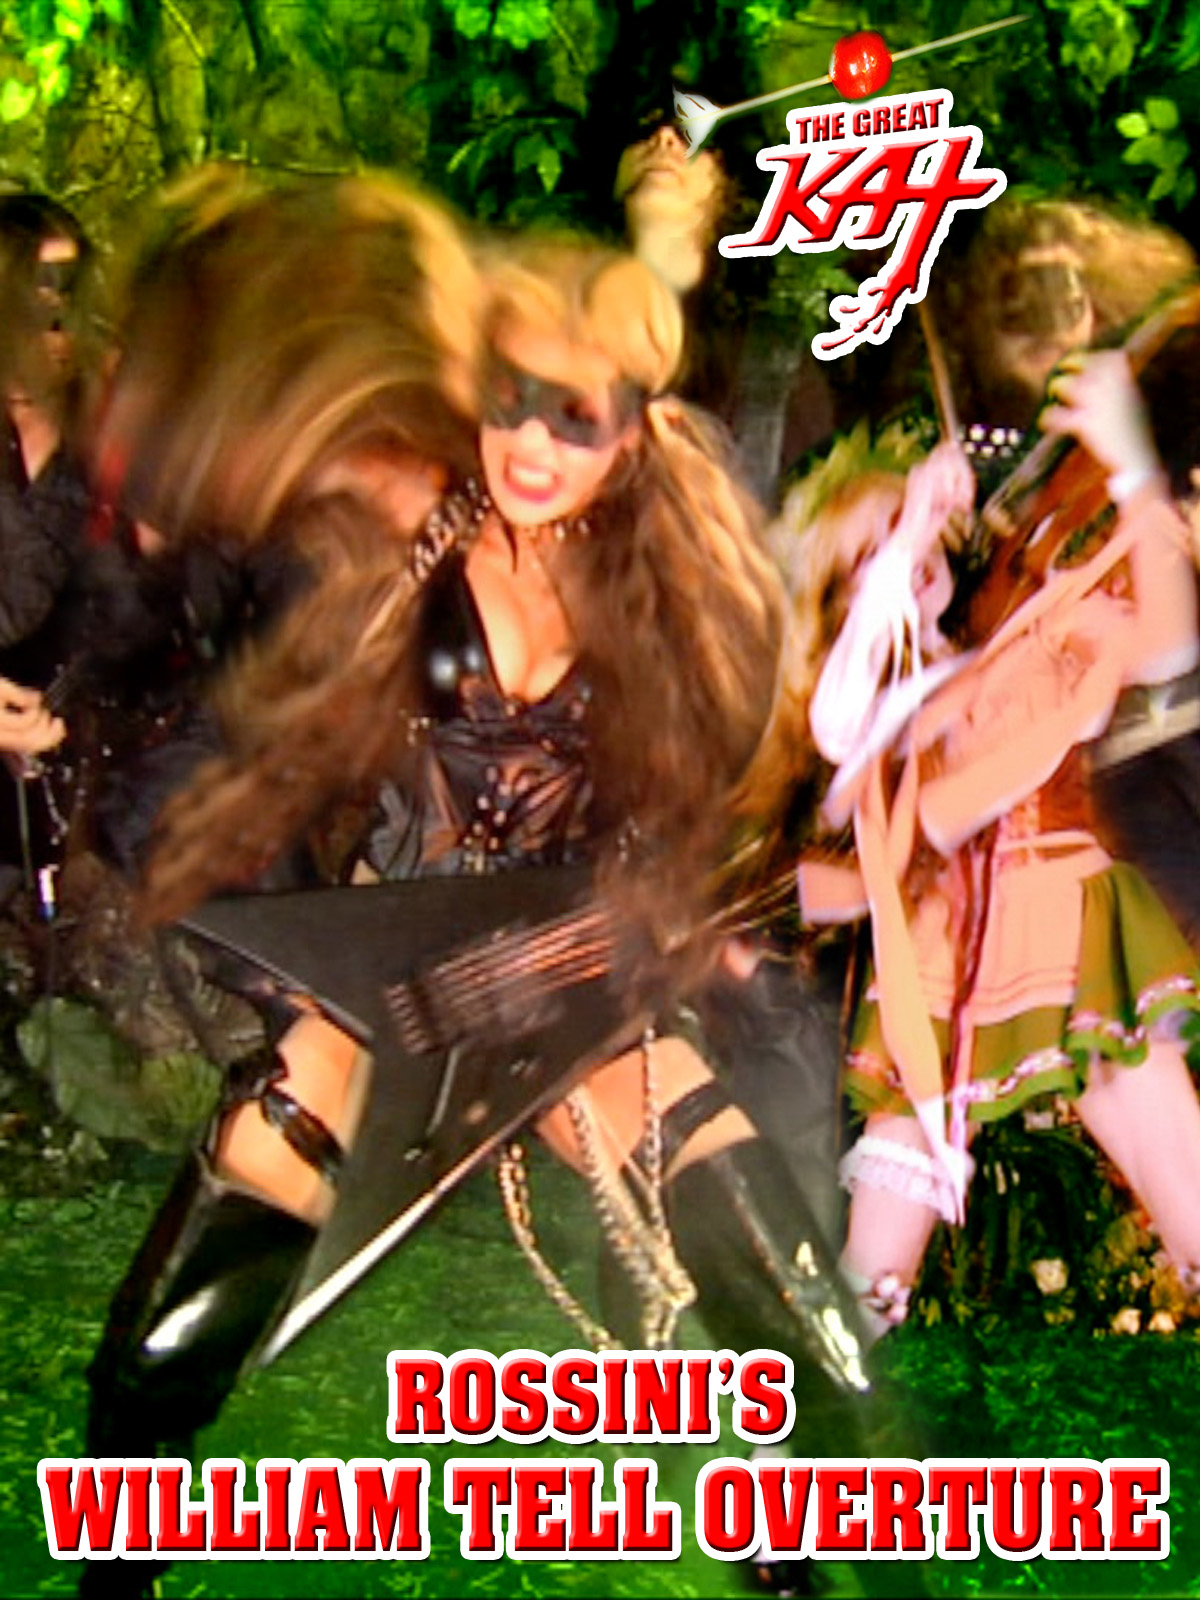 """HI-YO SILVER!! WATCH FREE on AMAZON PRIME ROSSINI'S """"WILLIAM TELL OVERTURE"""" - MUSIC VIDEO FROM THE GREAT KAT'S Upcoming DVD!  Free on Amazon Prime: https://www.amazon.com/Great-Kat-William-Tell-Overture/dp/B01MA3QE40/ """"WILLIAM TELL OVERTURE"""" (""""LONE RANGER"""" Theme Song) MUSIC VIDEO brings the Legend of William Tell to life, starring THE GREAT KAT, the """"LONE SHREDDER"""", performing VIRTUOSO SHRED Guitar AND Violin and conducting her HOT ALL-MALE BAND! WATCH FREE on AMAZON PRIME at https://www.amazon.com/Great-Kat-William-Tell-Overture/dp/B01MA3QE40/"""